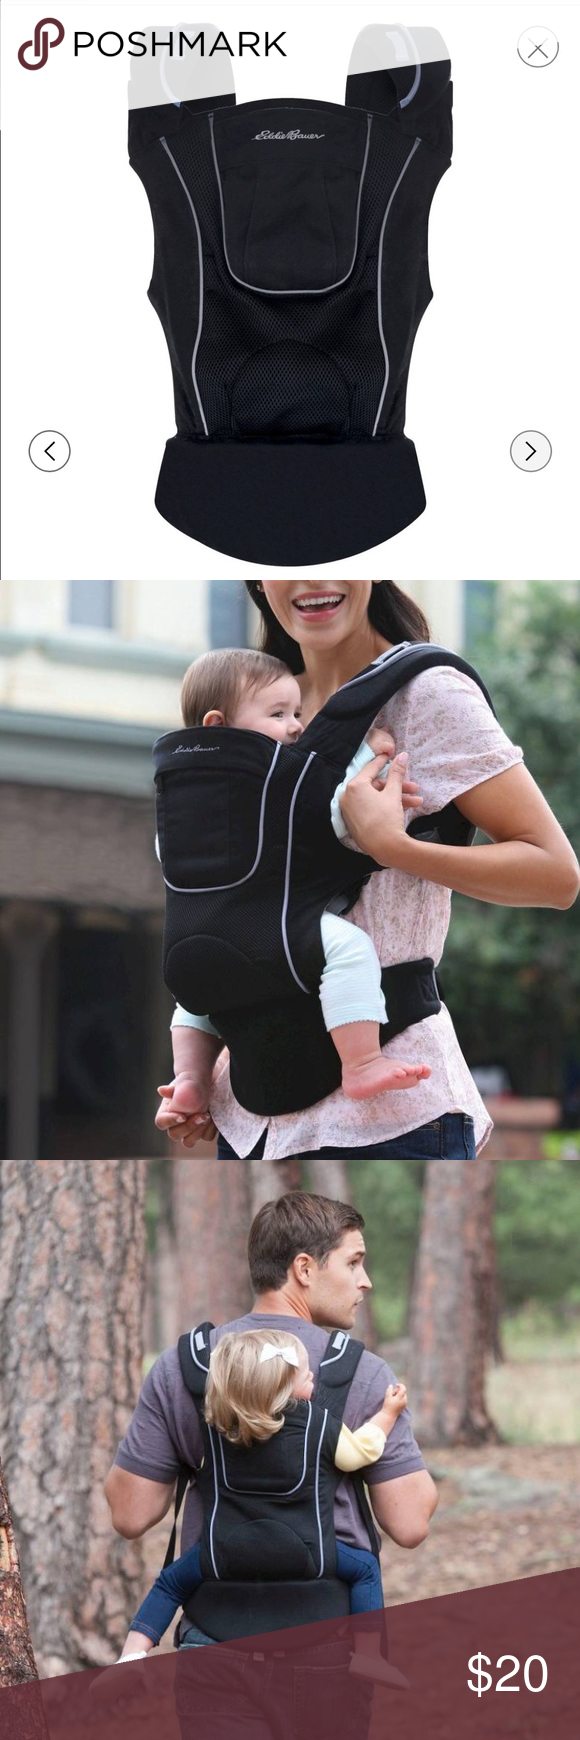 5549667405b Eddie Bauer 3-in-1 Comfort Baby Carrier Excellent condition!! Designed with  you and baby in mind. The Eddie Bauer Front Baby Carrier has a versatile